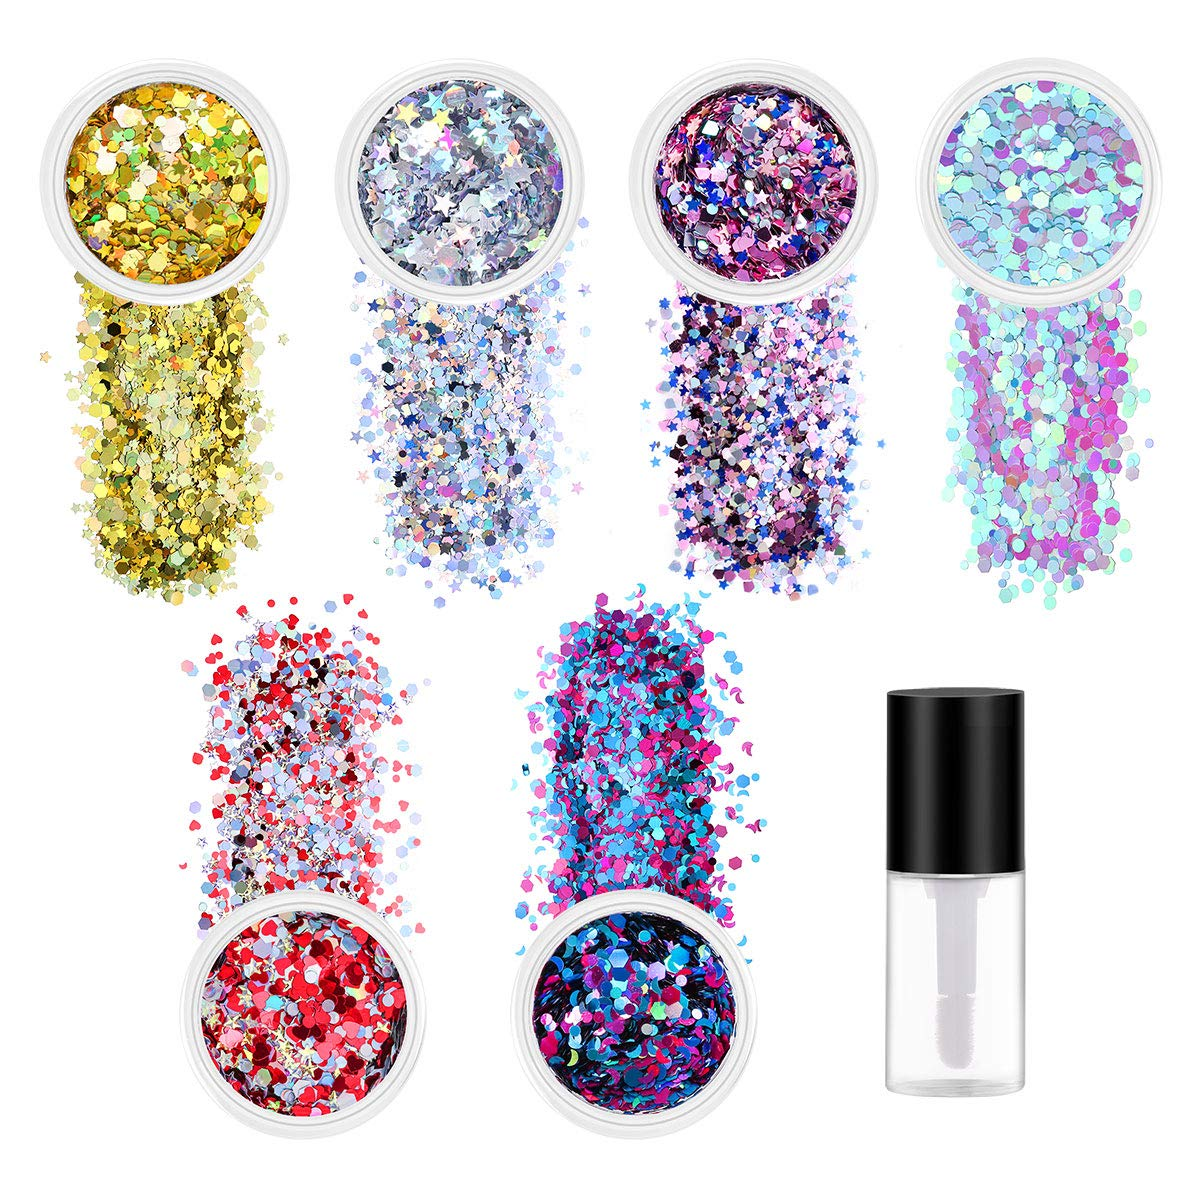 Face Body Glitter, NICEAUTY Holographic Chunky Glitter 6 Colors for Face Body Eye Hair Nail for Festival Makeup for Halloween, Daily Looks,Party Looks, with Different Sized Stars and Hexagons